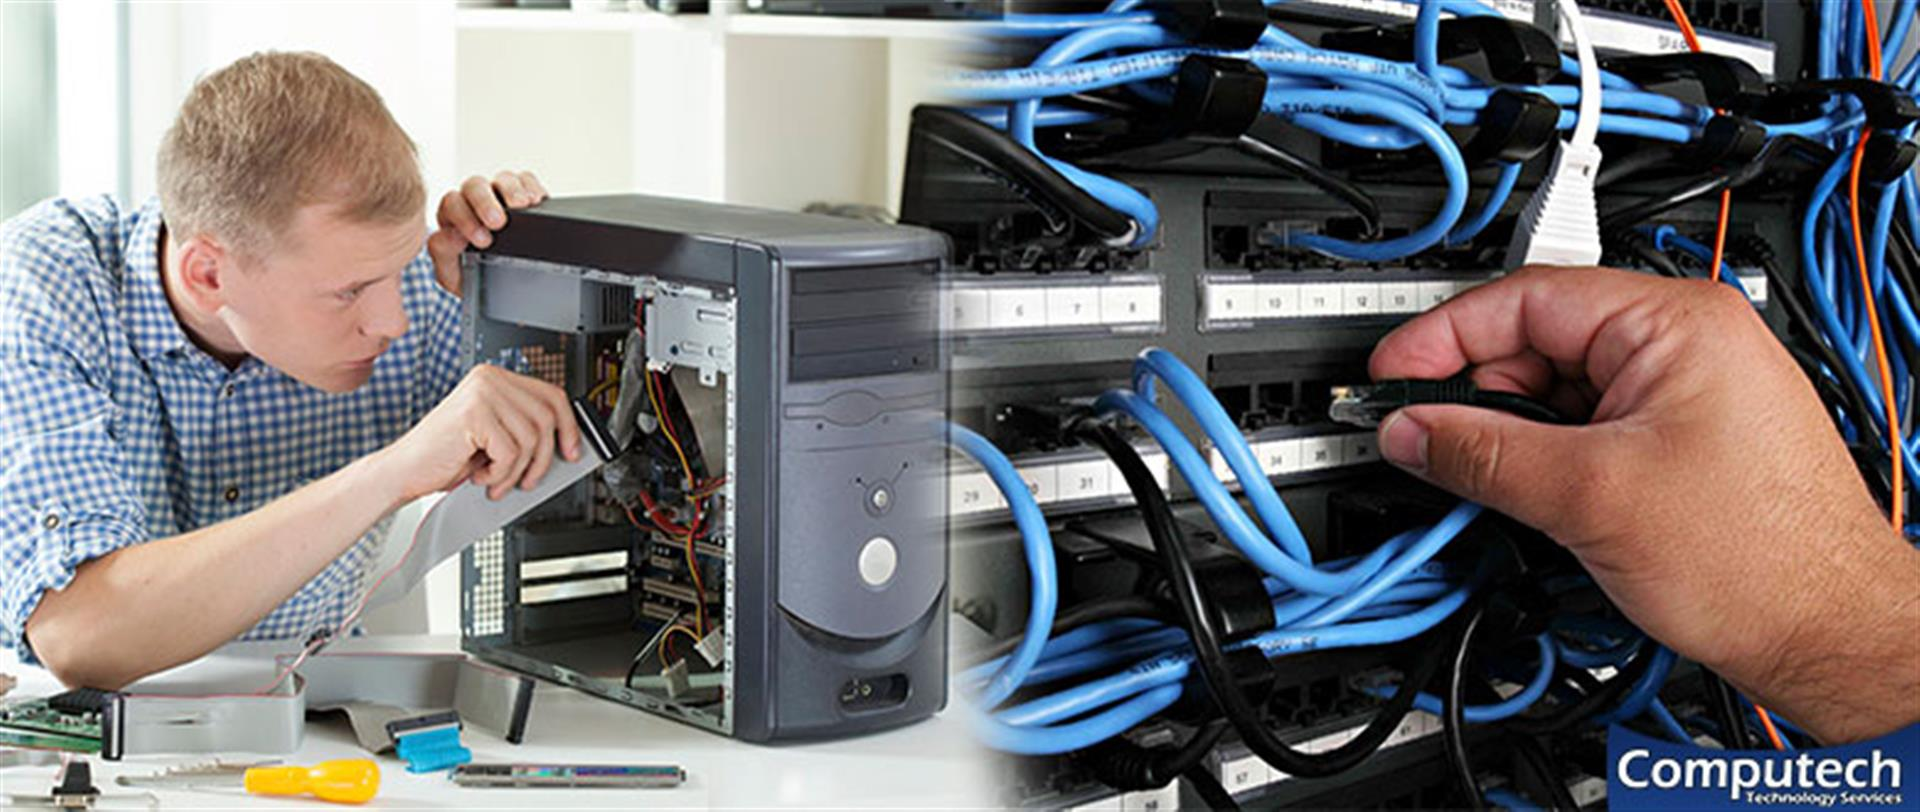 Springfield Tennessee Onsite PC & Printer Repairs, Network, Voice & Data Cabling Services